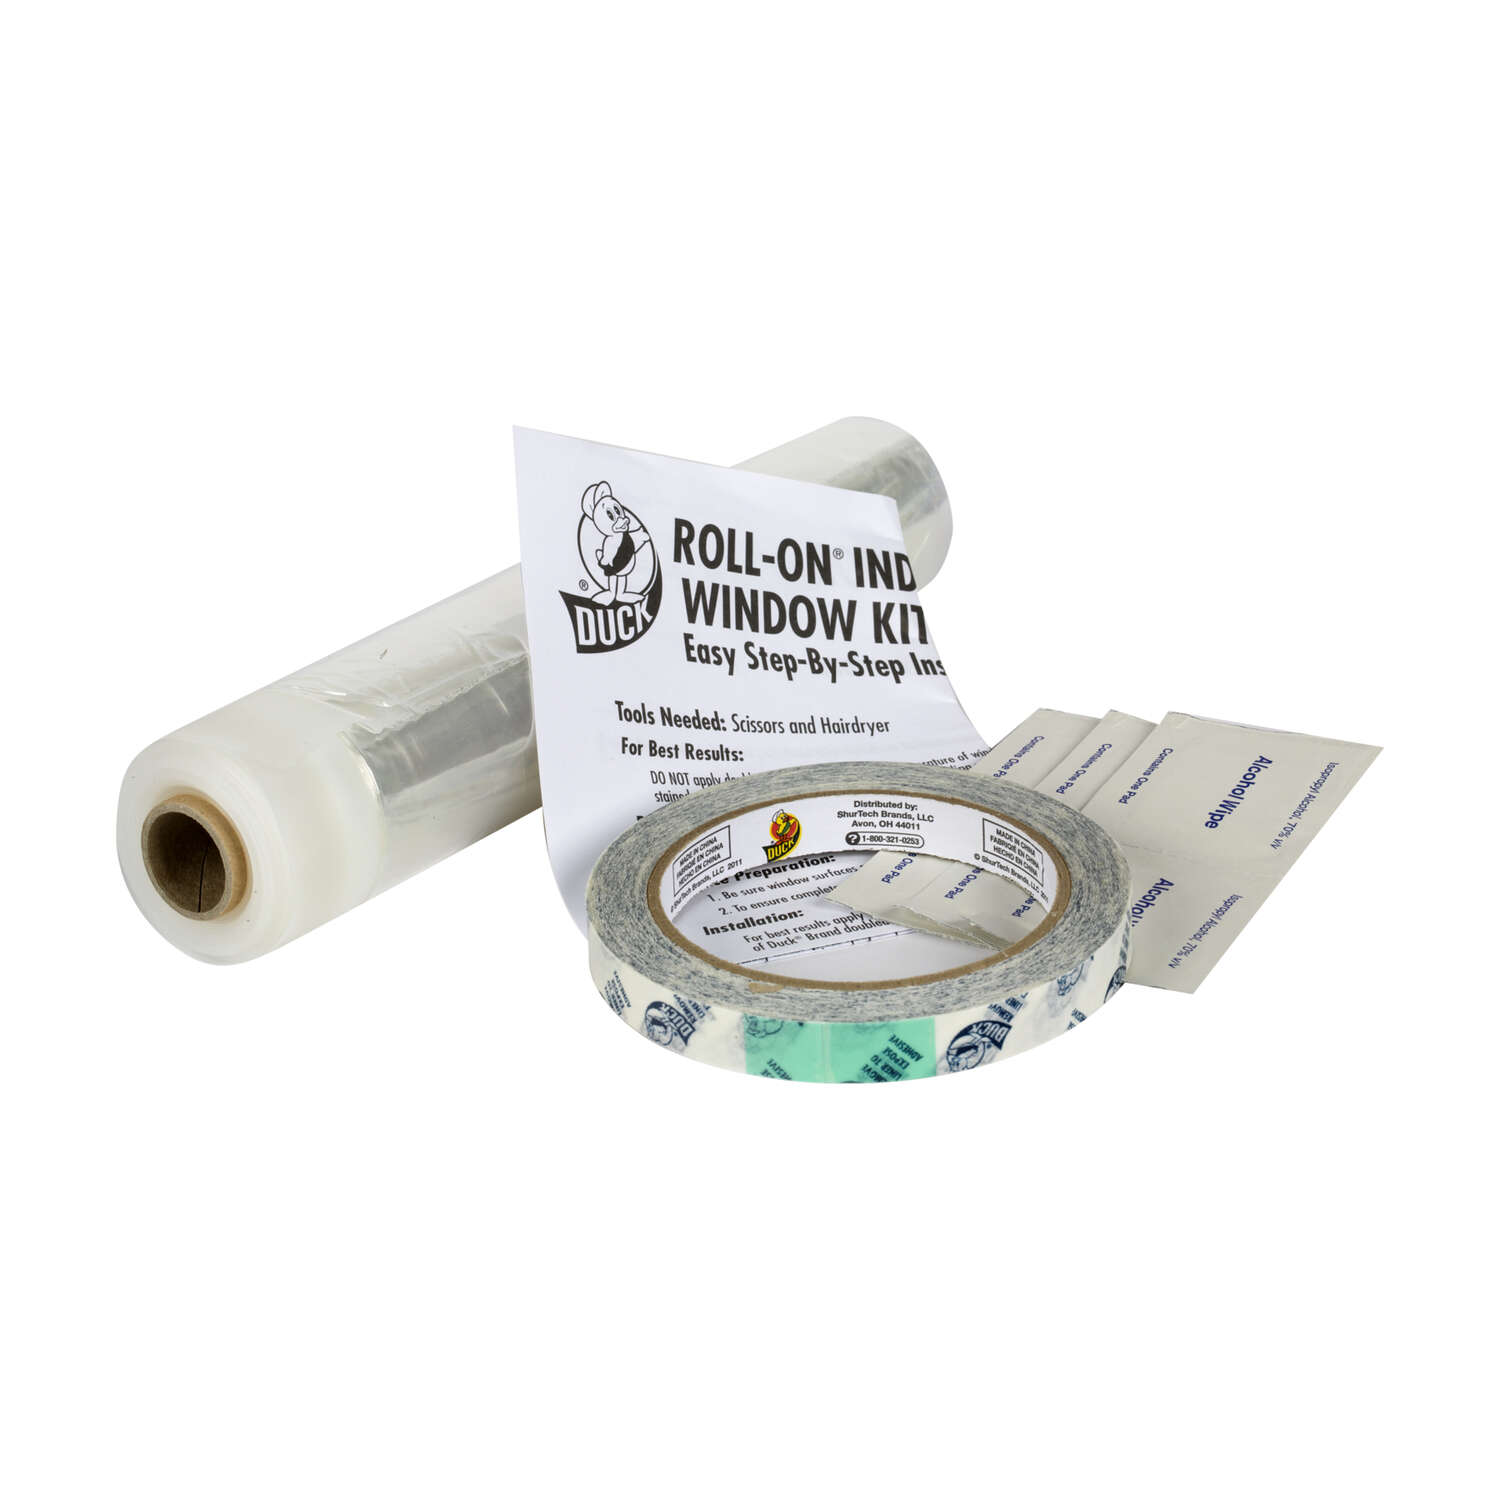 Duck Roll On Clear Indoor Window Film Insulator Kit 62 In W X 200 Trailer Wiring Harness Tractor Supply